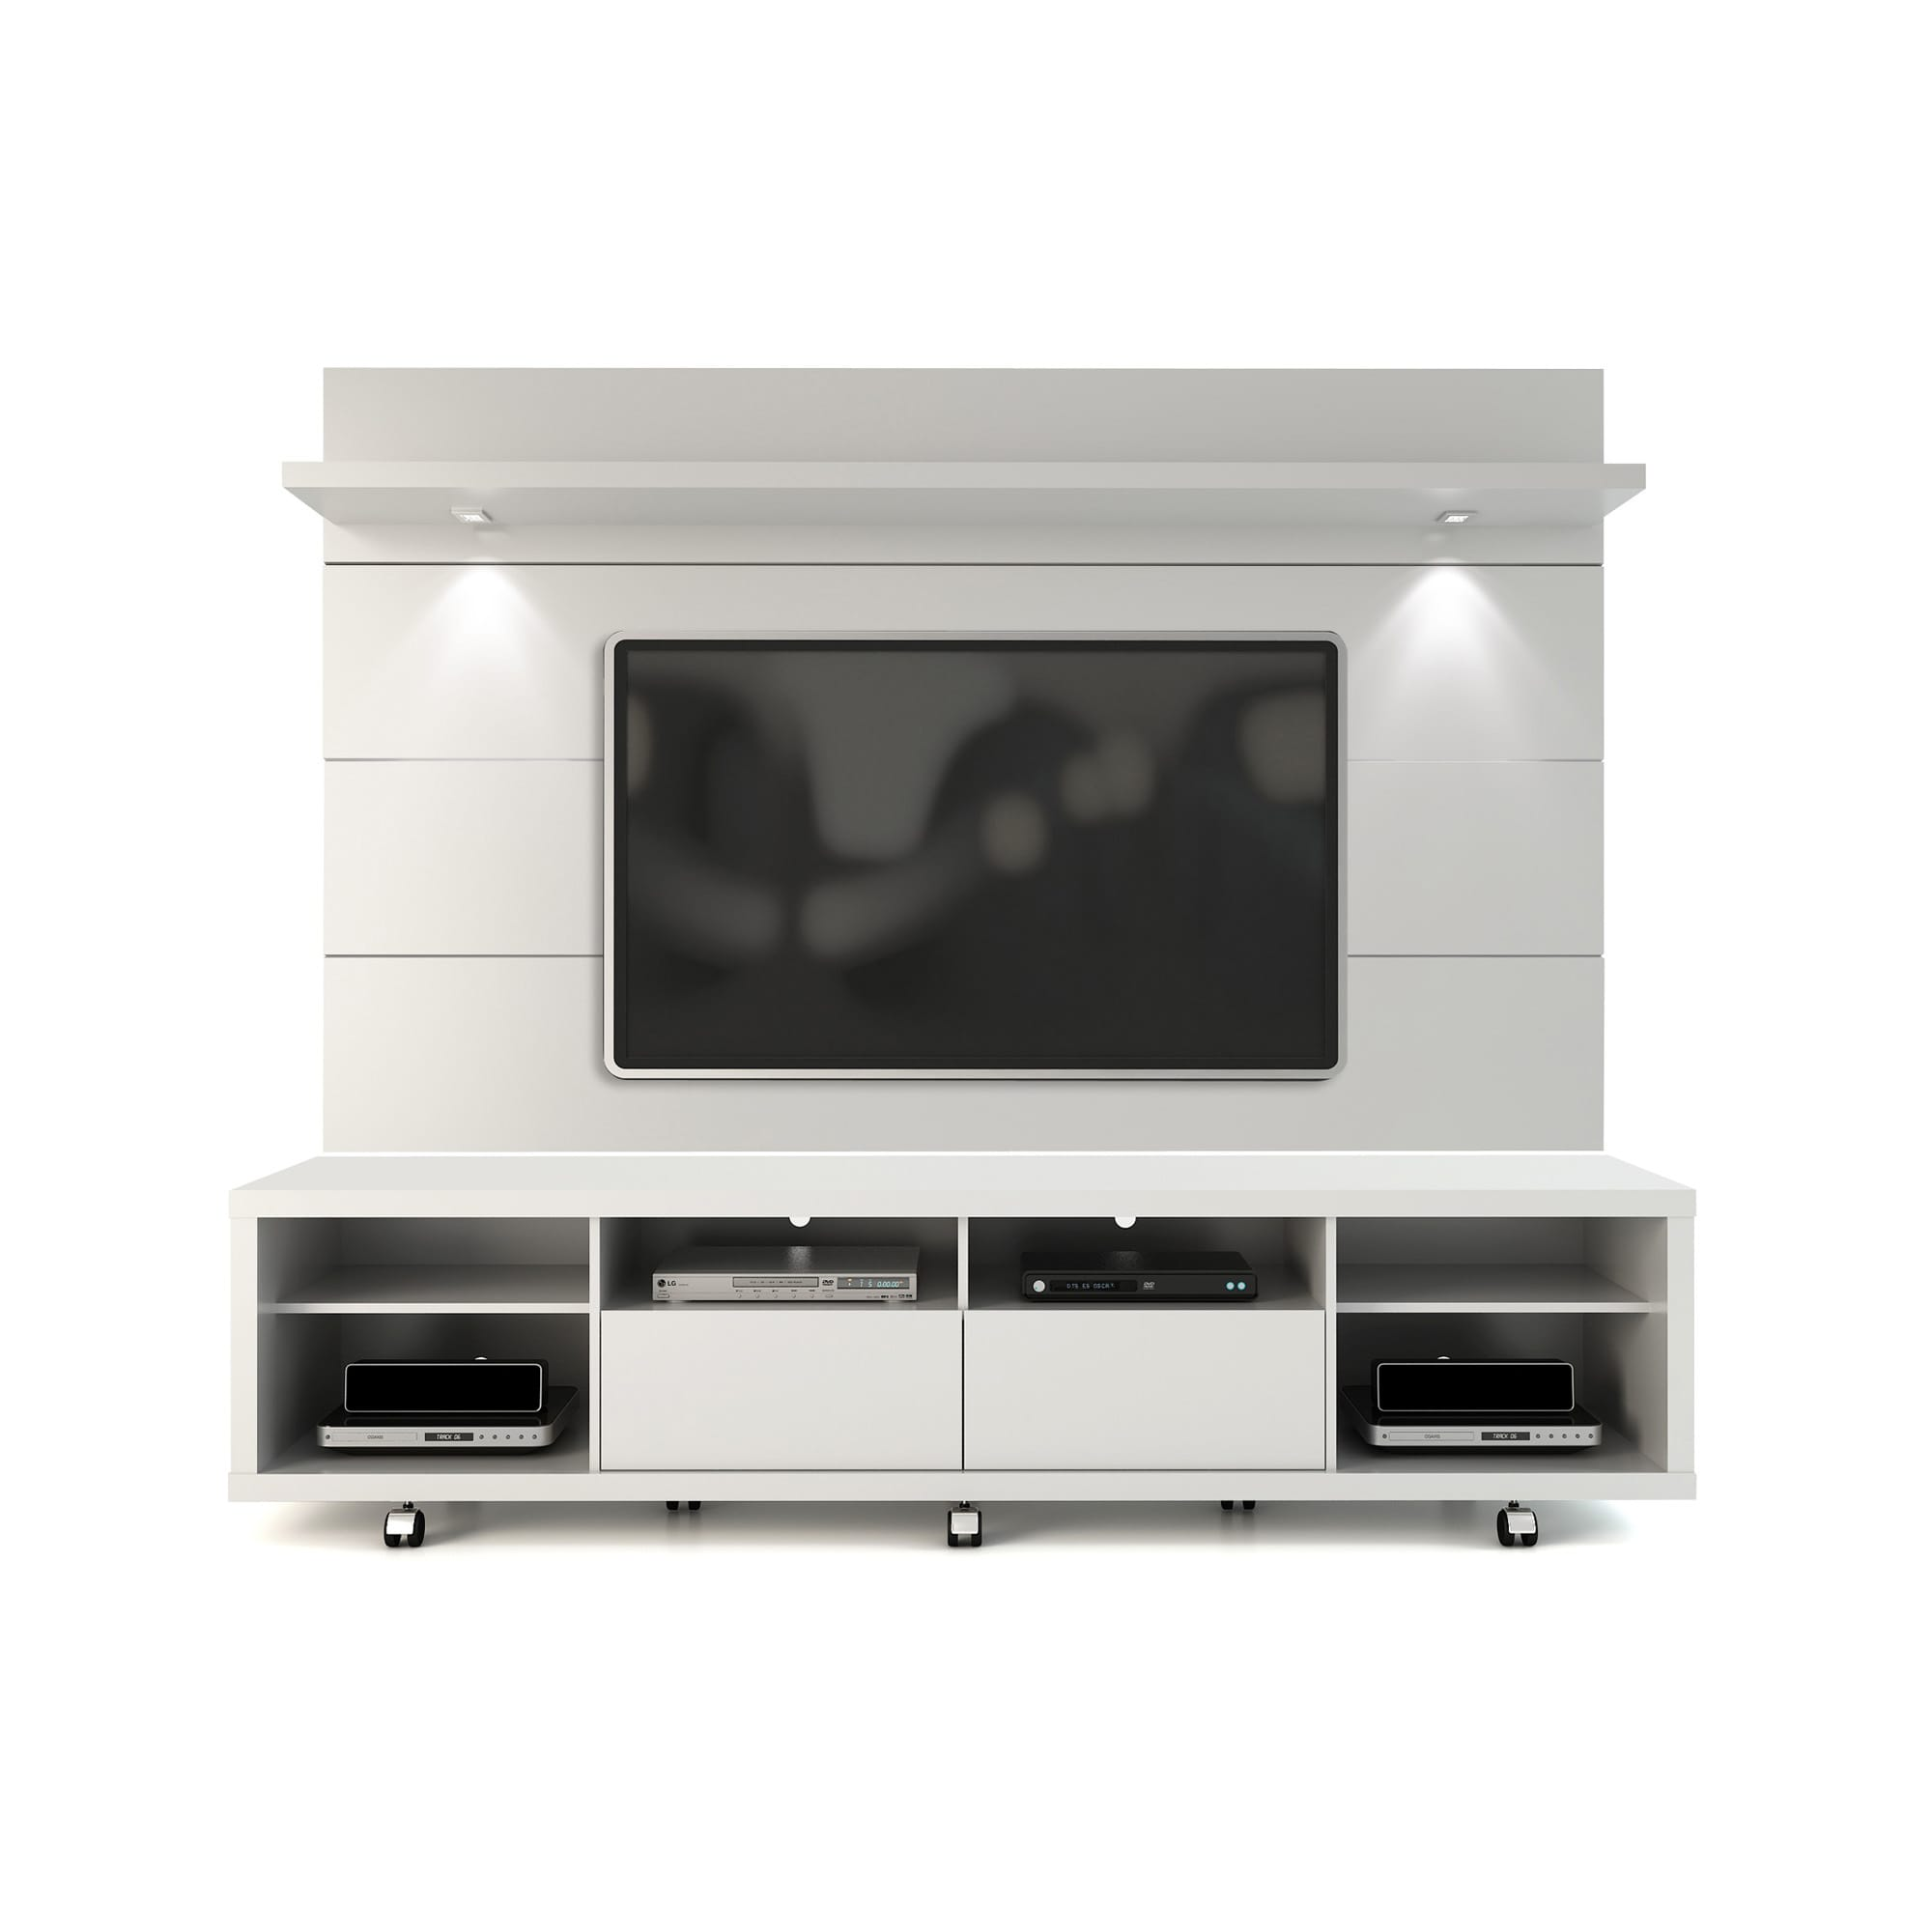 cabrini white gloss tv stand  floating wall tv panel w led  - cabrini white gloss tv stand  floating wall tv panel w led lights bymanhattan comfort